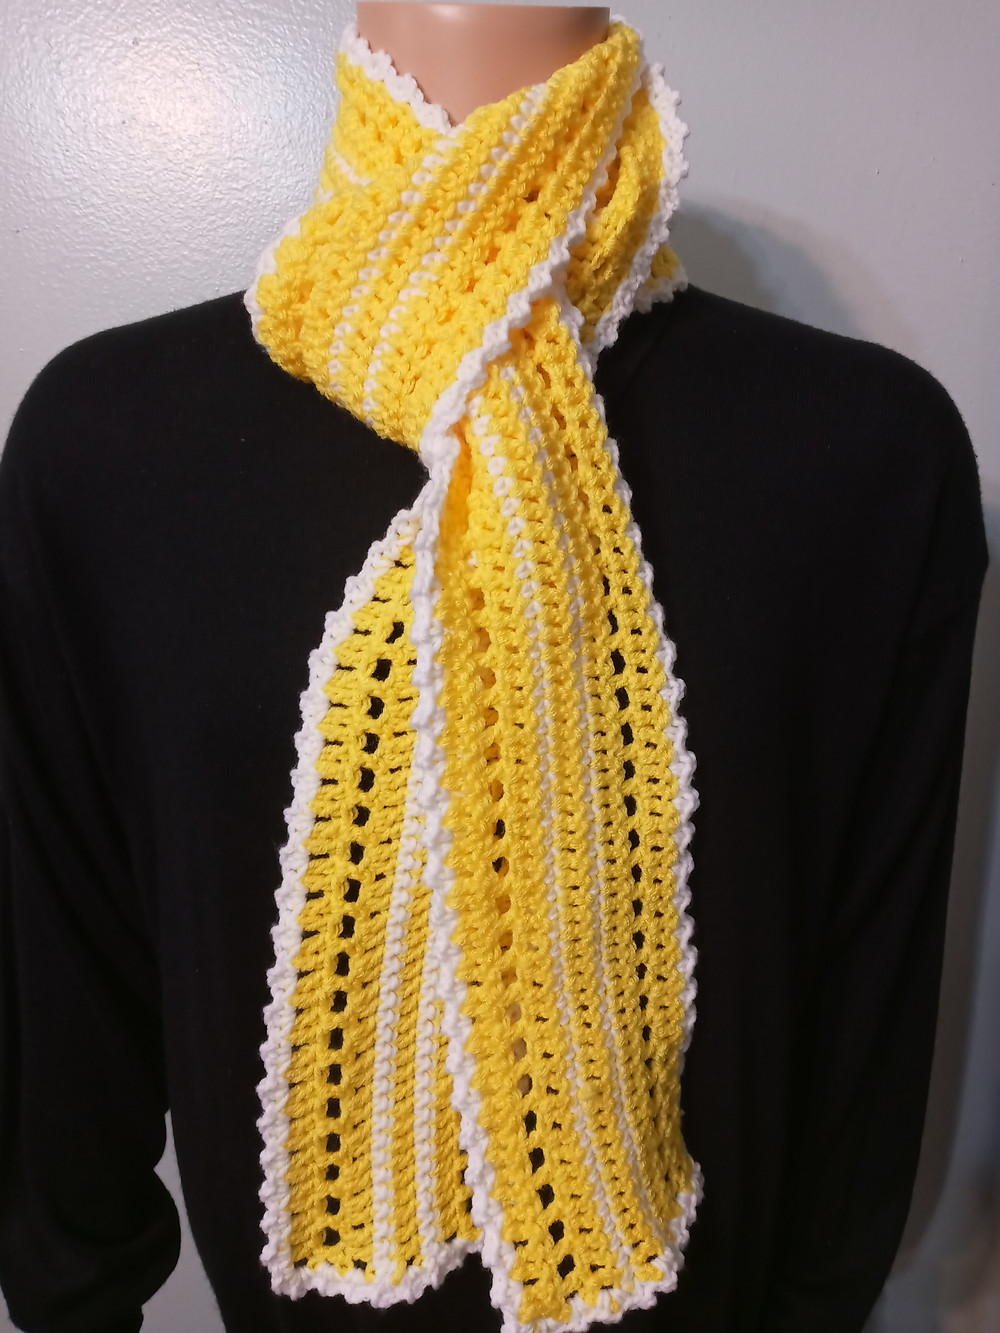 Yellow and white scarf handmade and designed by Renaee Smith using acrylic yarn.